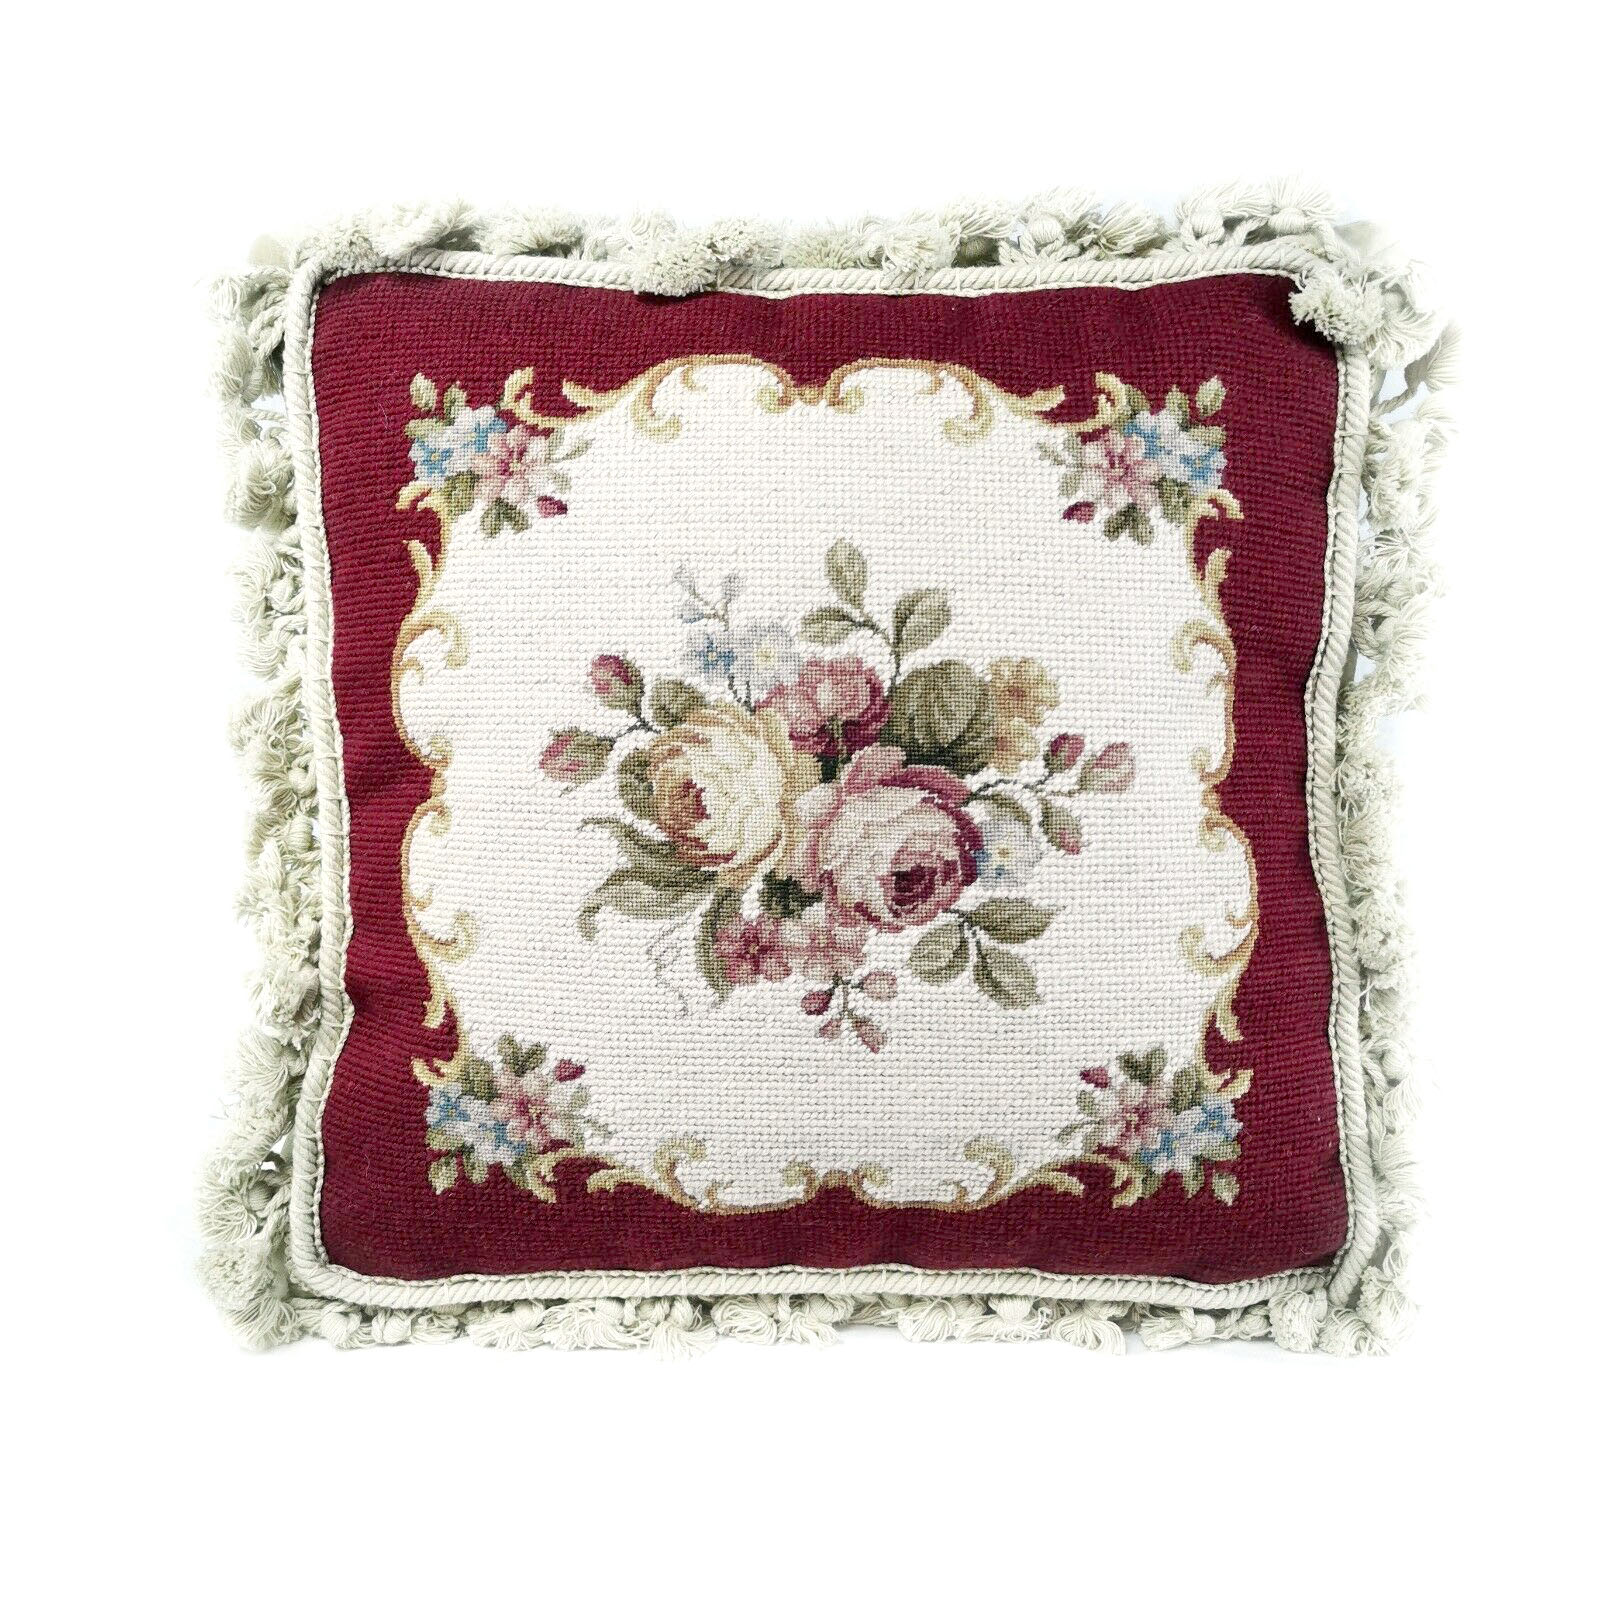 14 x 14 Handmade Wool Needlepoint and Petitpoint Roses Cushion Cover Pillow Case with Fringe 12980413 (1)